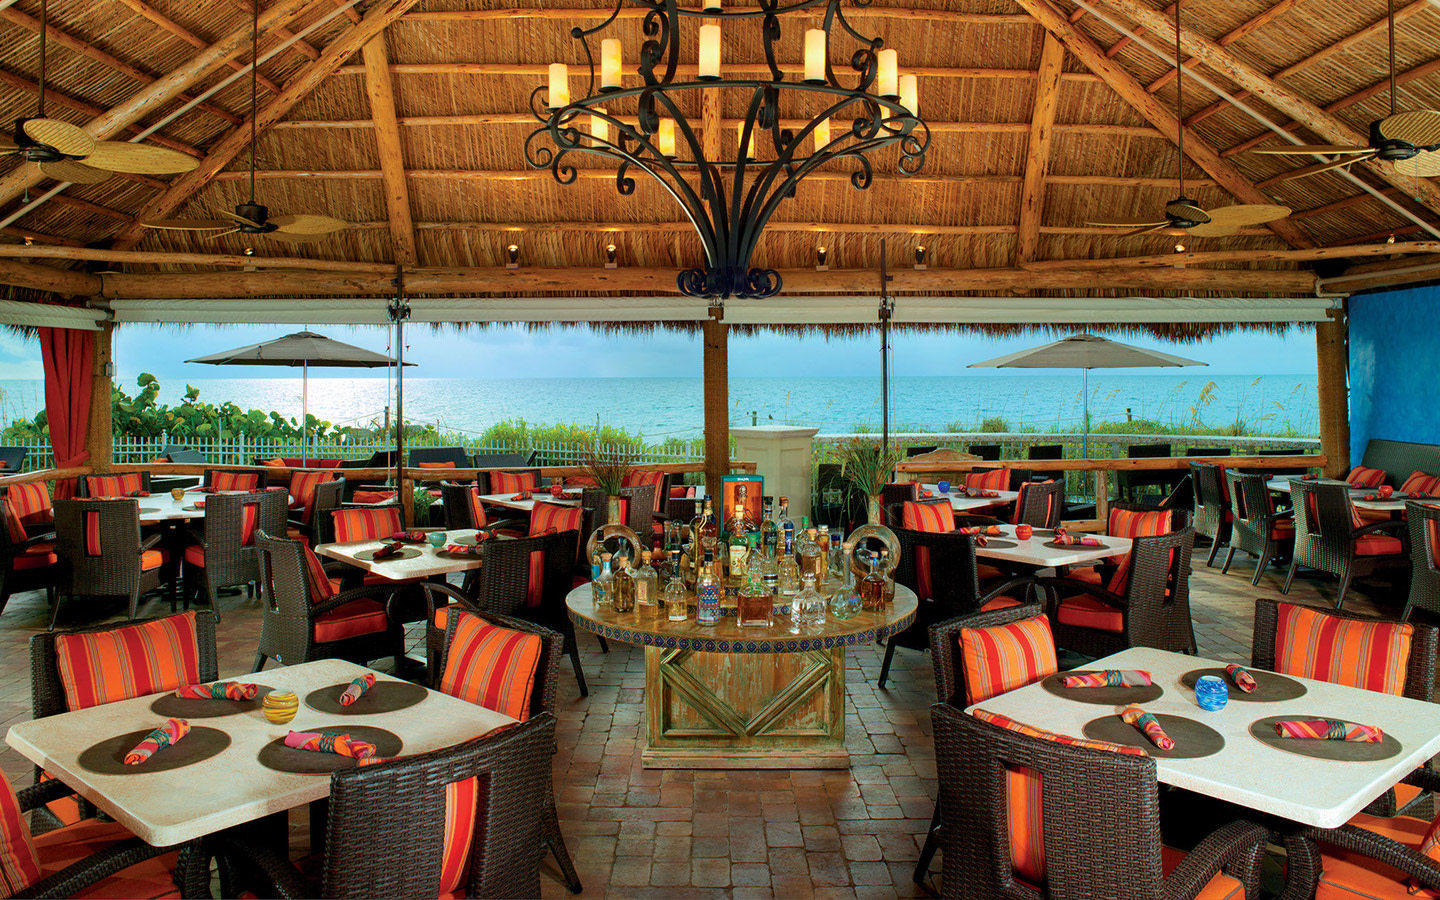 Cantina Beach at Ritz-Carlton, Key Biscayne